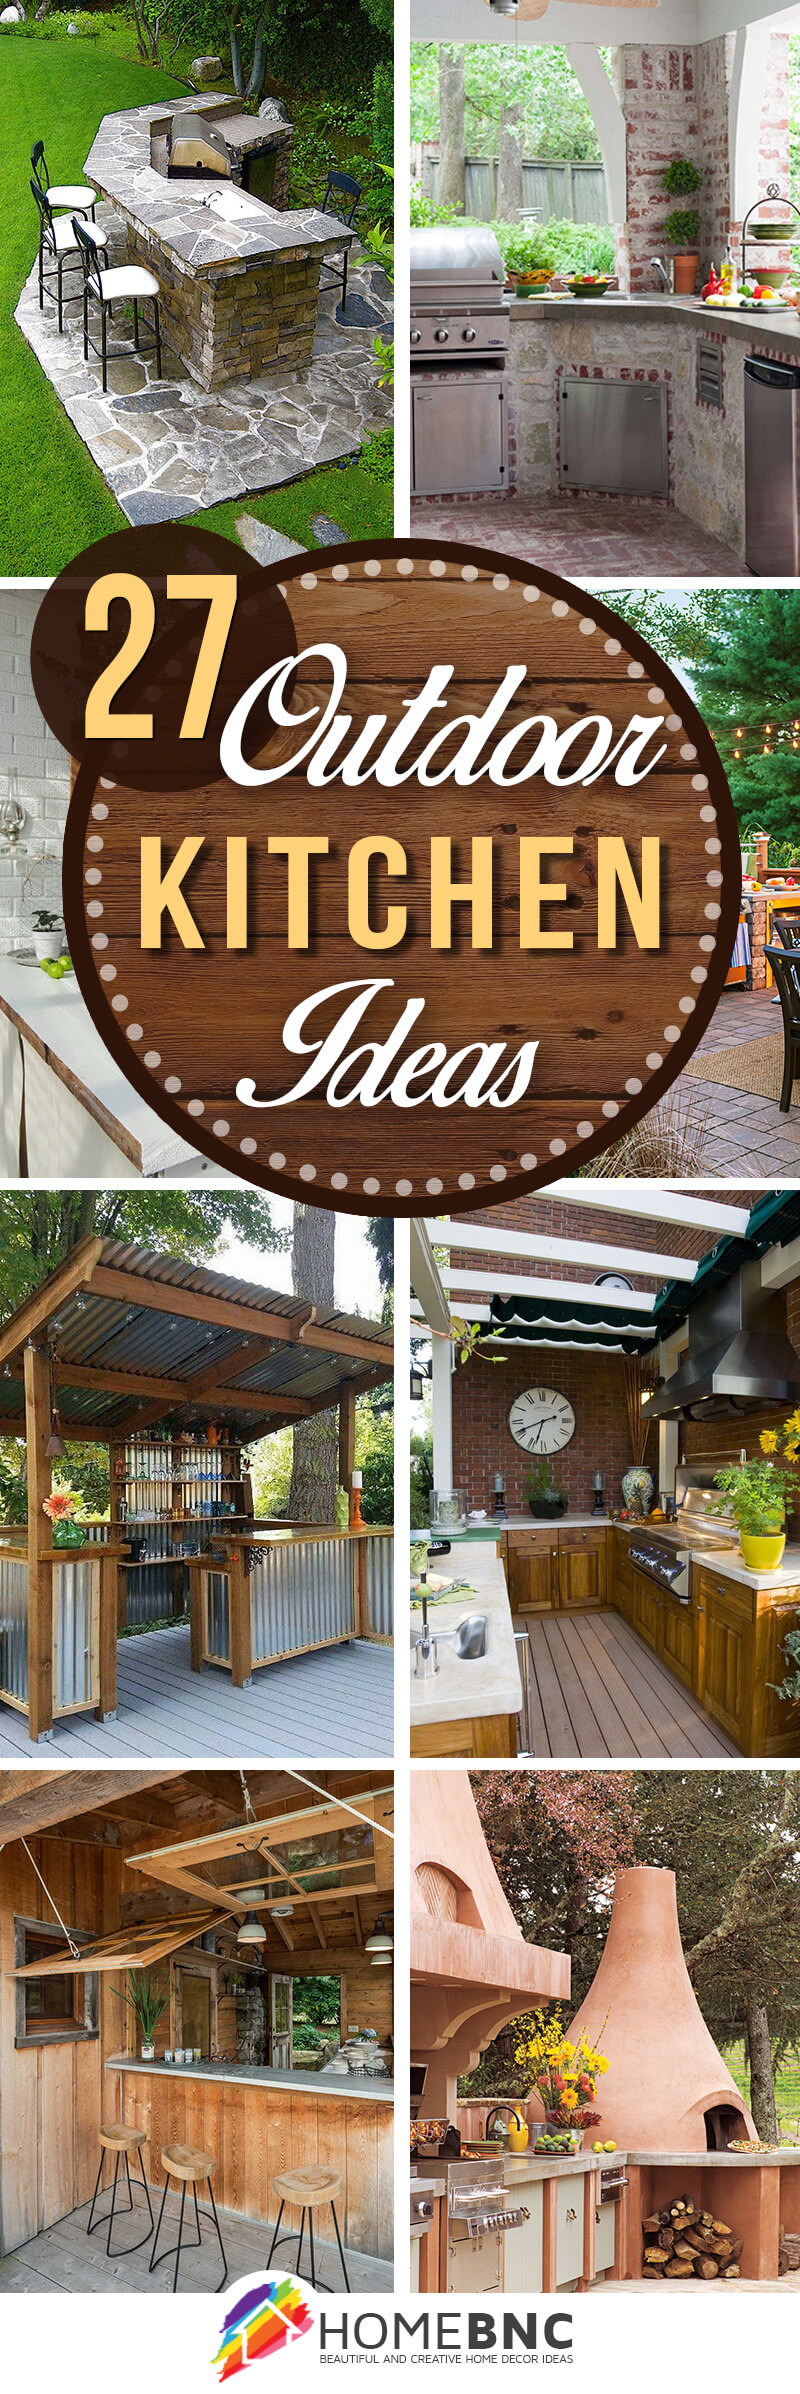 27 Best Outdoor Kitchen Ideas and Designs for 2017 on Backyard Kitchen Design id=77859